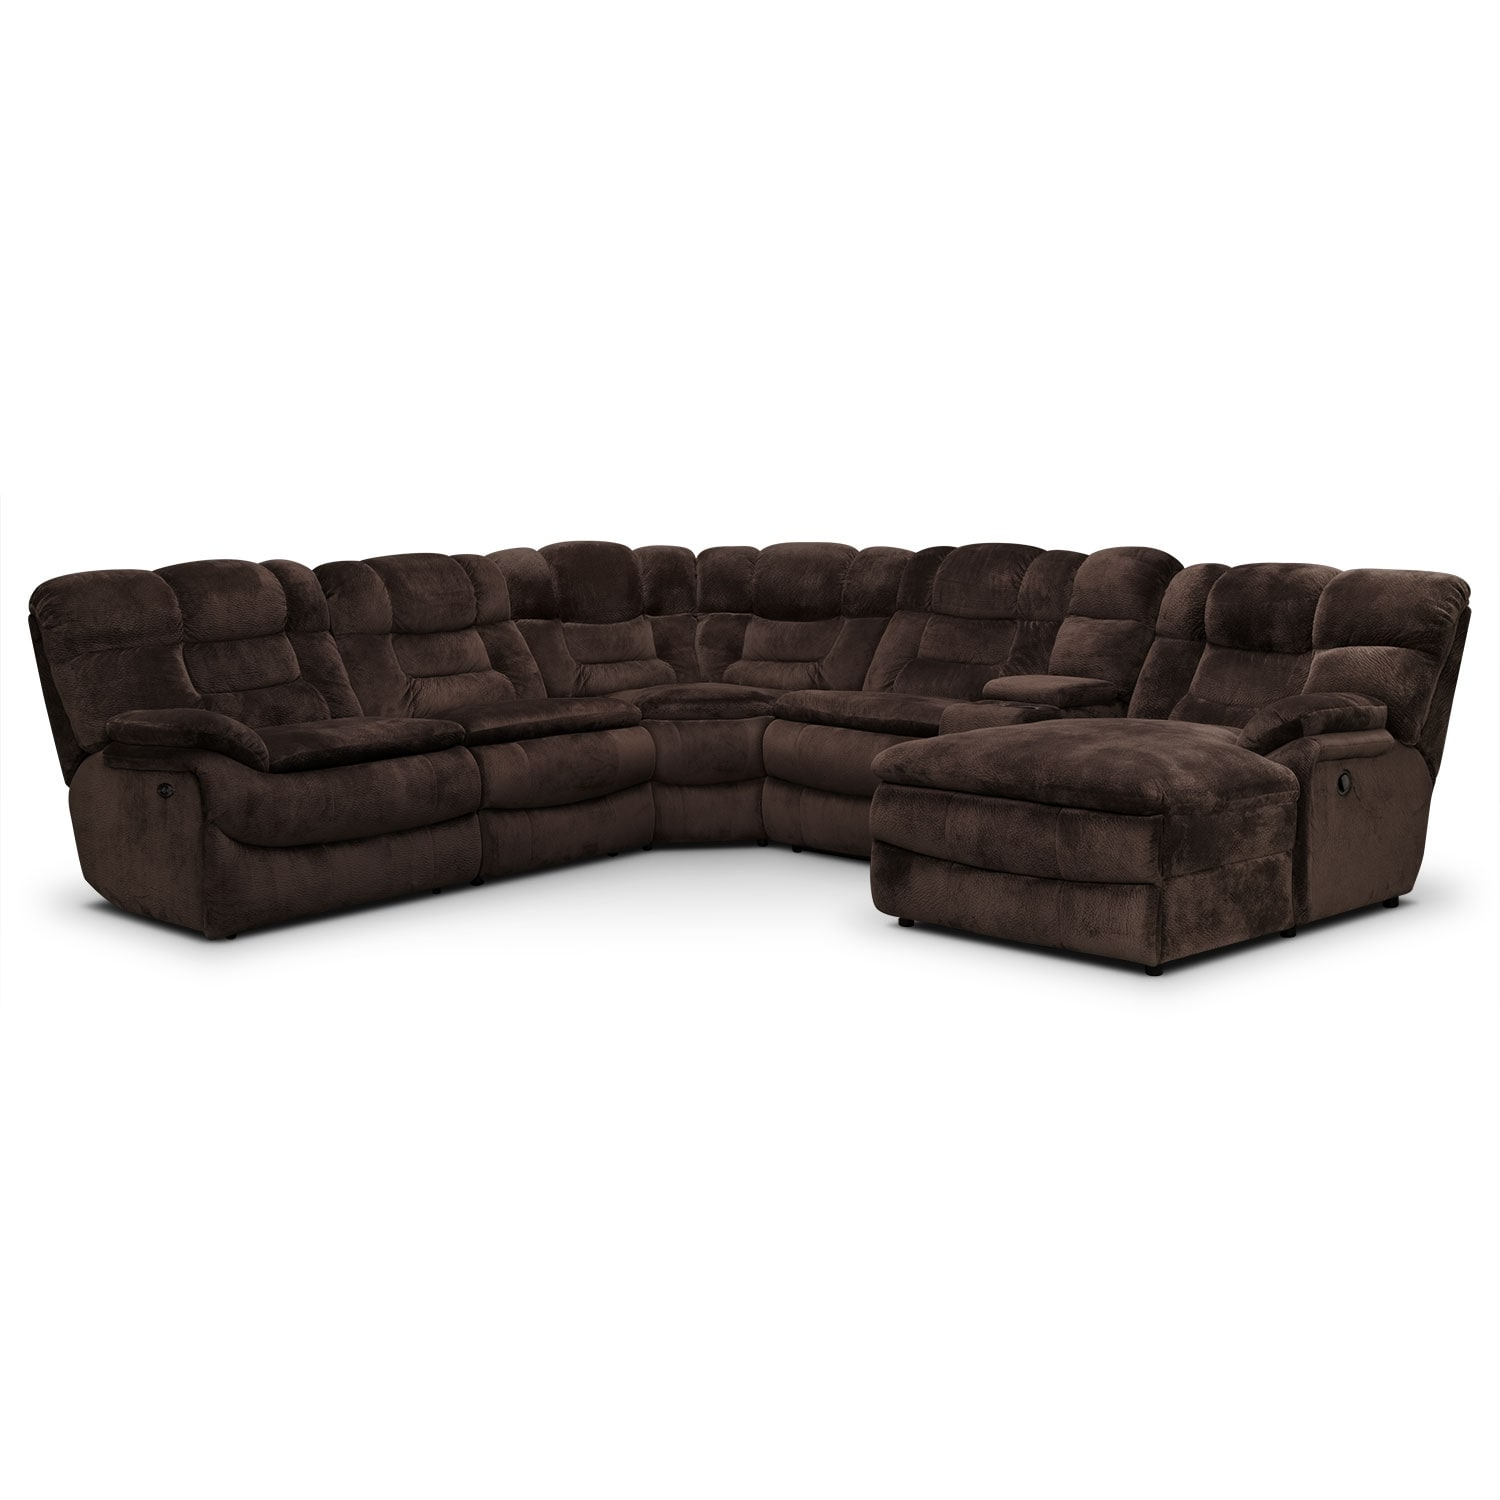 Big Softie 6 Piece Power Reclining Sectional With Chaise And 2 Reclining Seats Value City Furniture